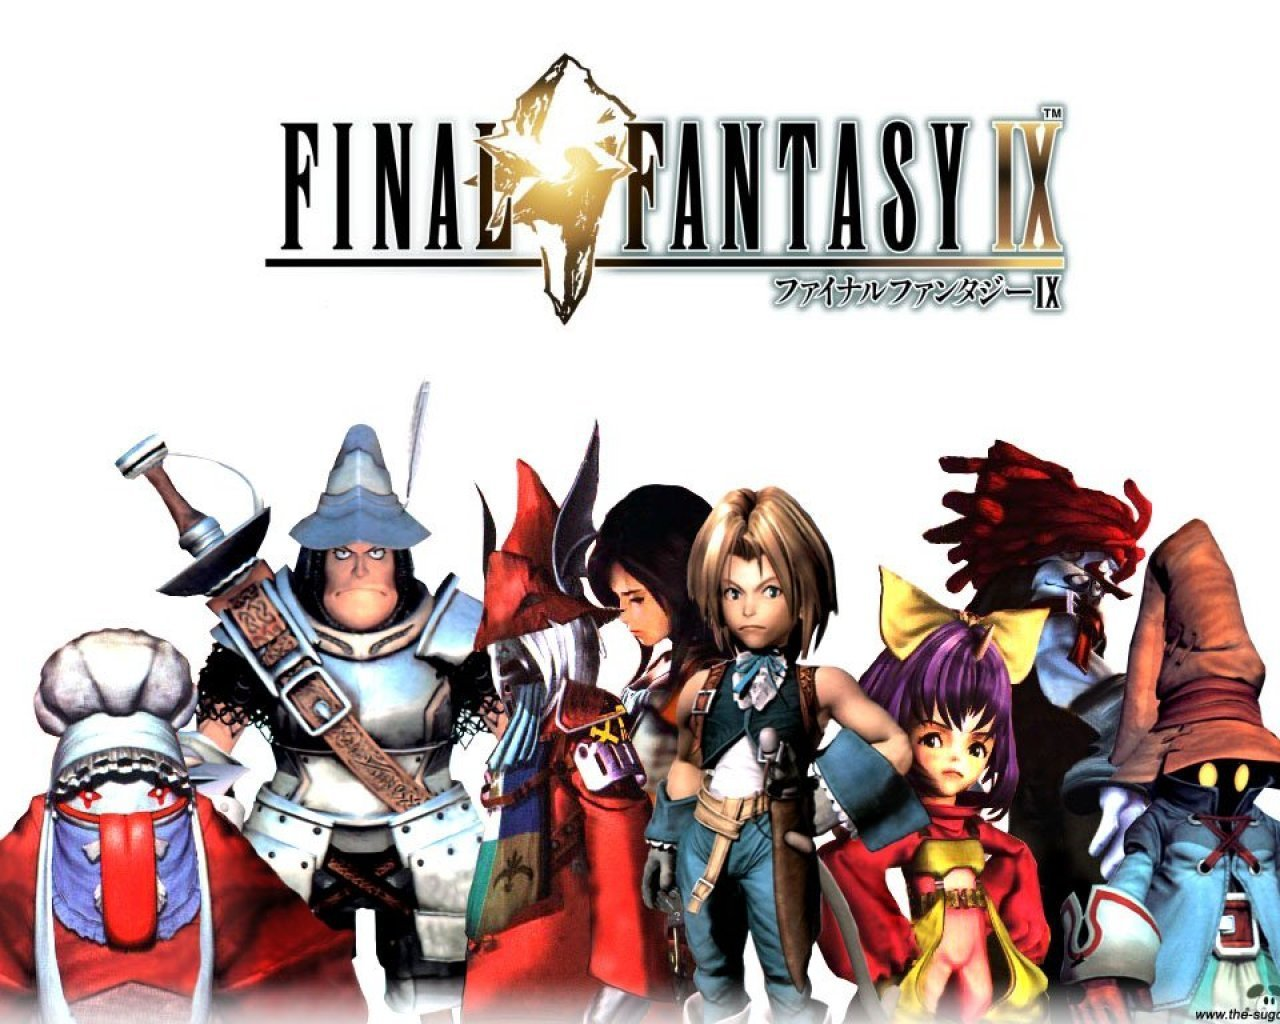 https://ladygeekgirl.files.wordpress.com/2012/11/ff9-final-fantasy-ix-2689108-1280-1024.jpg